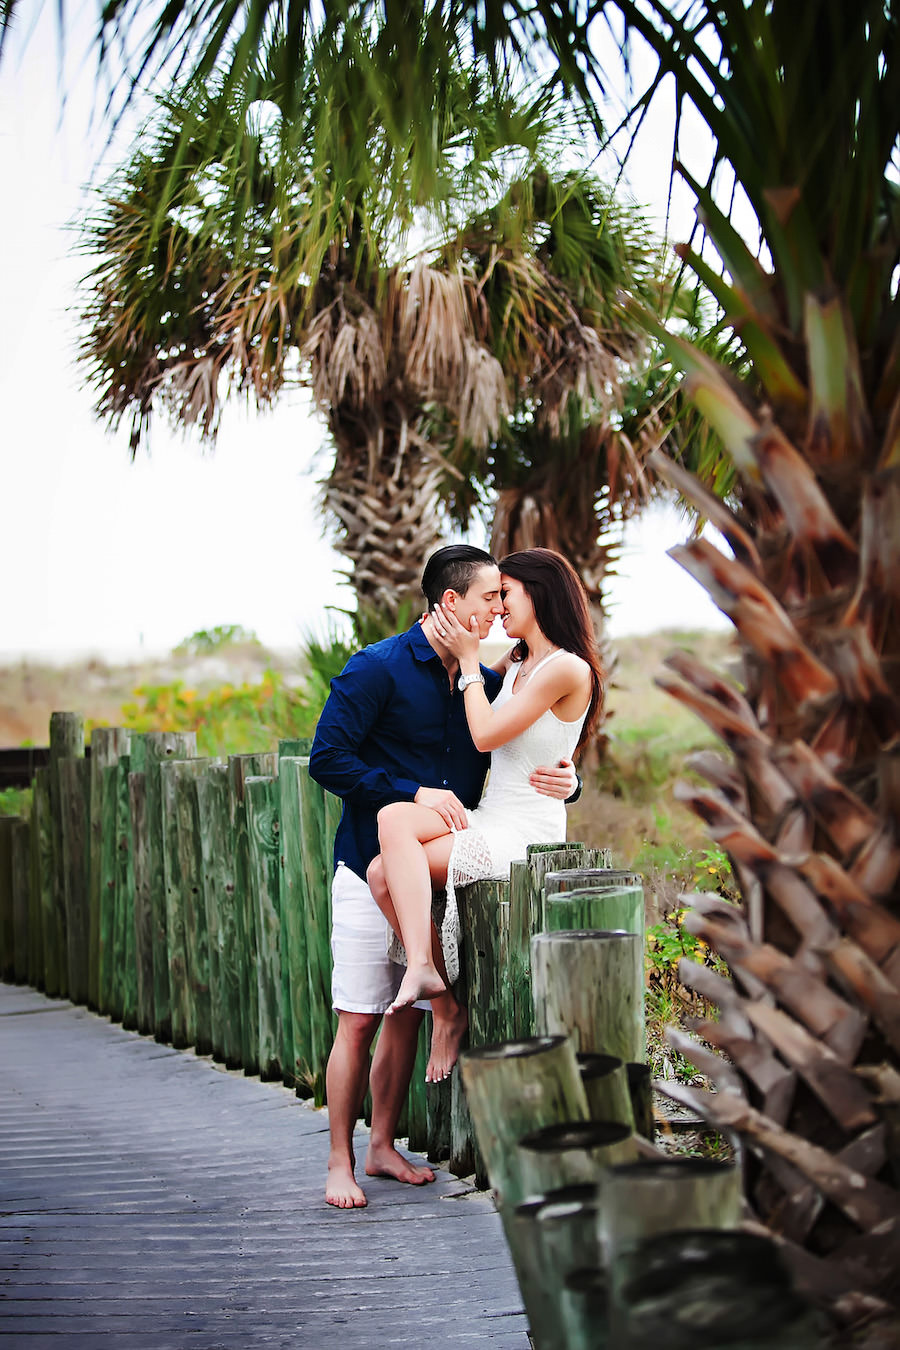 Outdoor, Waterfront Clearwater Sand Key Park Engagement Session   Clearwater Wedding Photographer Limelight Photography